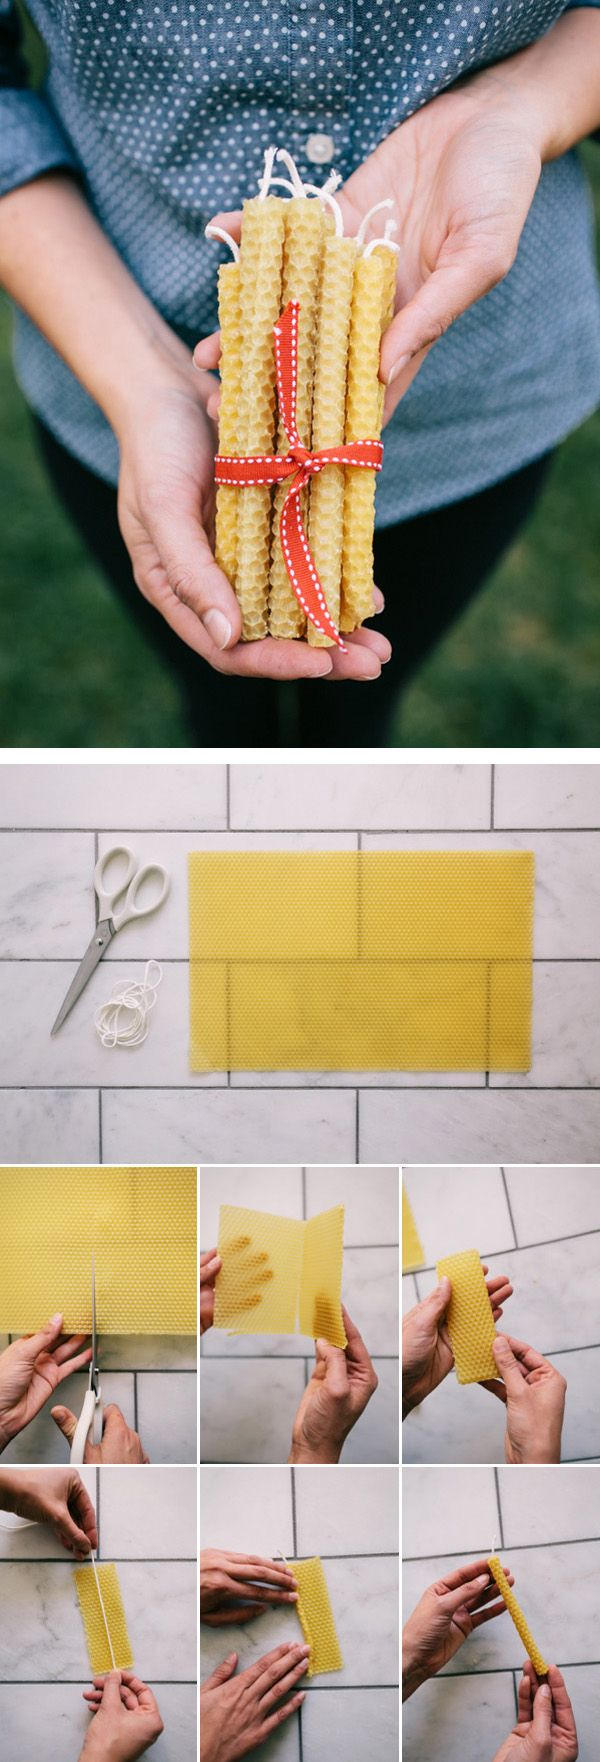 DIY Beeswax Candles . I always love the look of hand rolled beeswax candles, and they burn so nicely